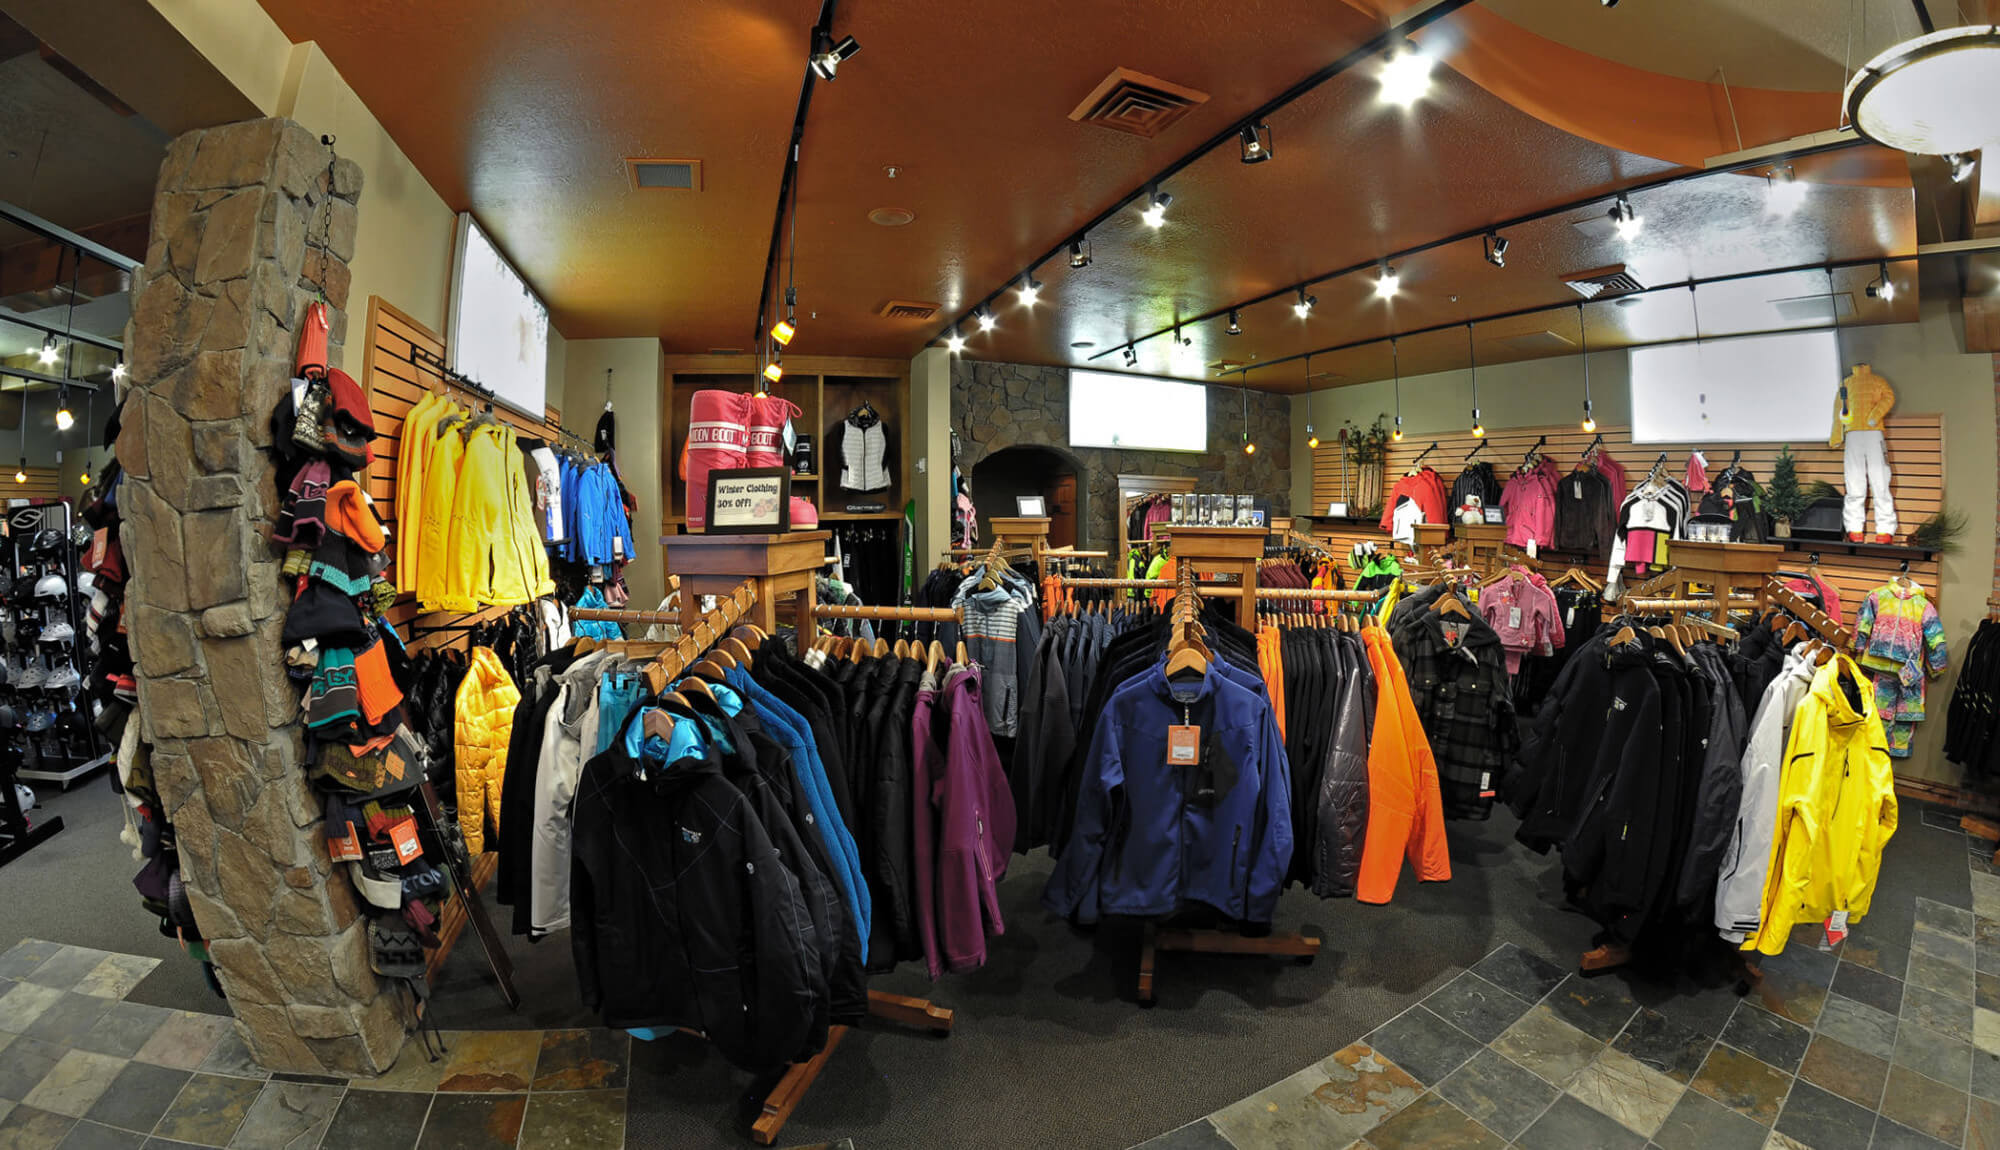 Ski jackets and hats on display | Westgate Park City Resort & Spa